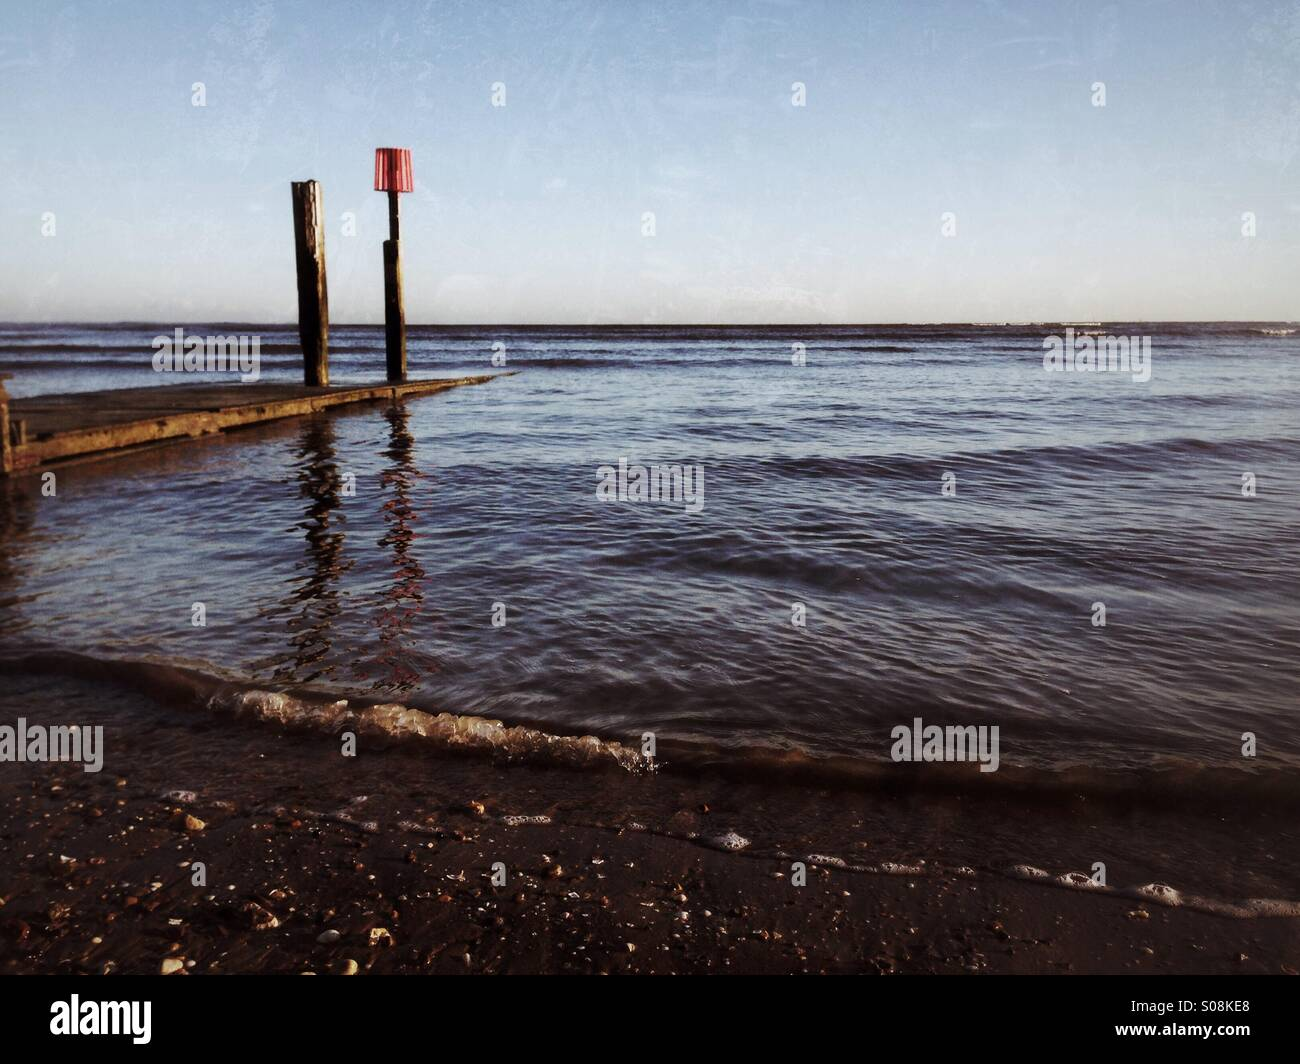 Wooden pontoon and incoming tide. - Stock Image